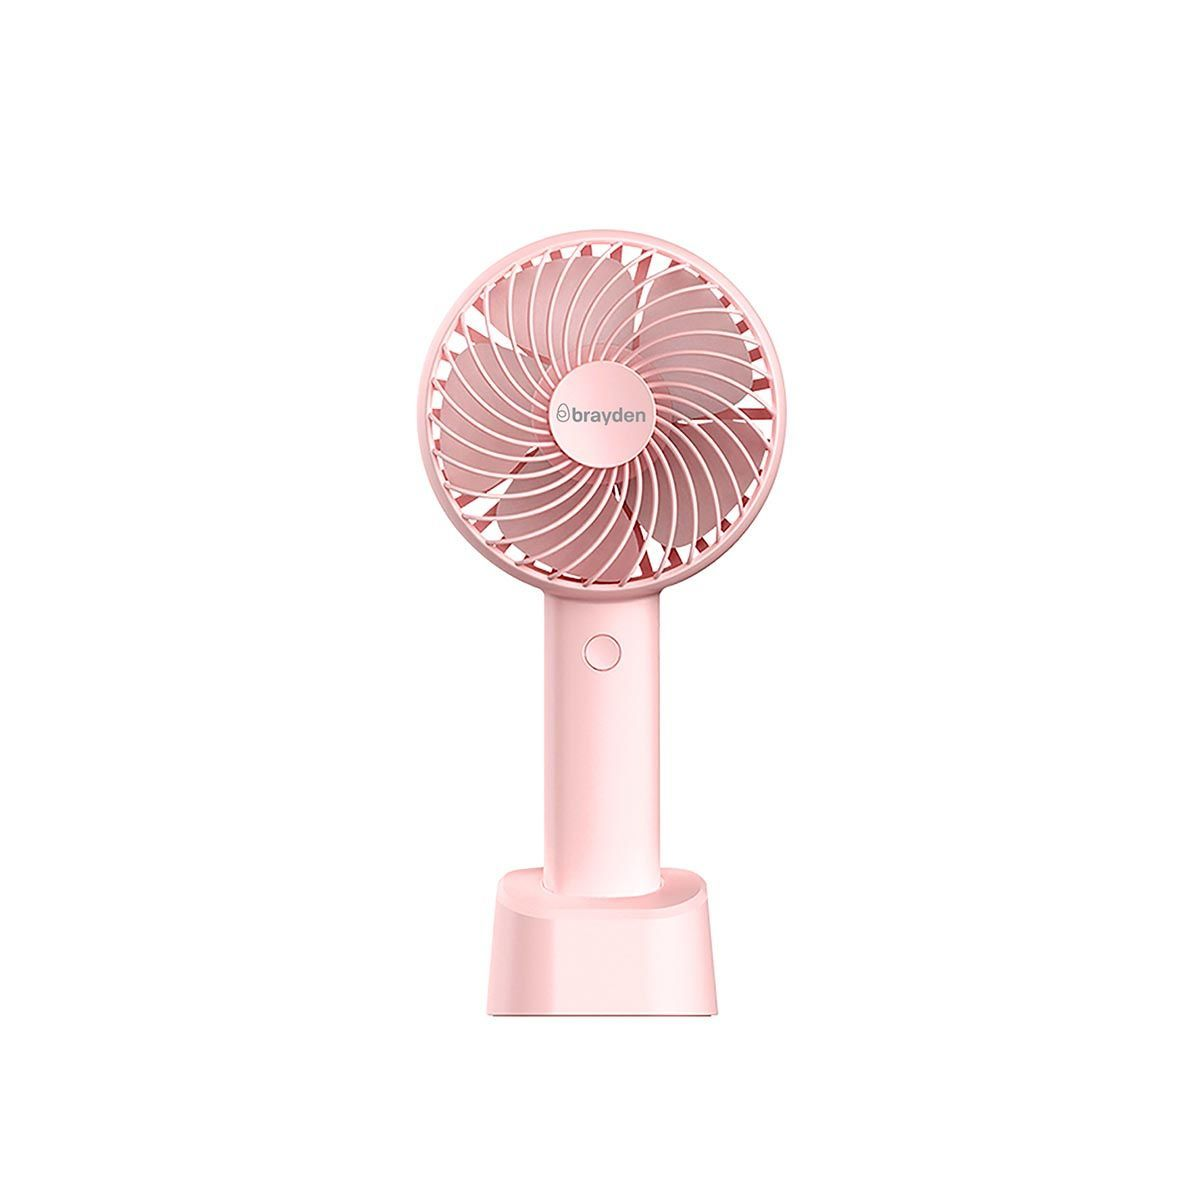 Brayden Airo F10 - Rechargeable Mini Fan(Pink)